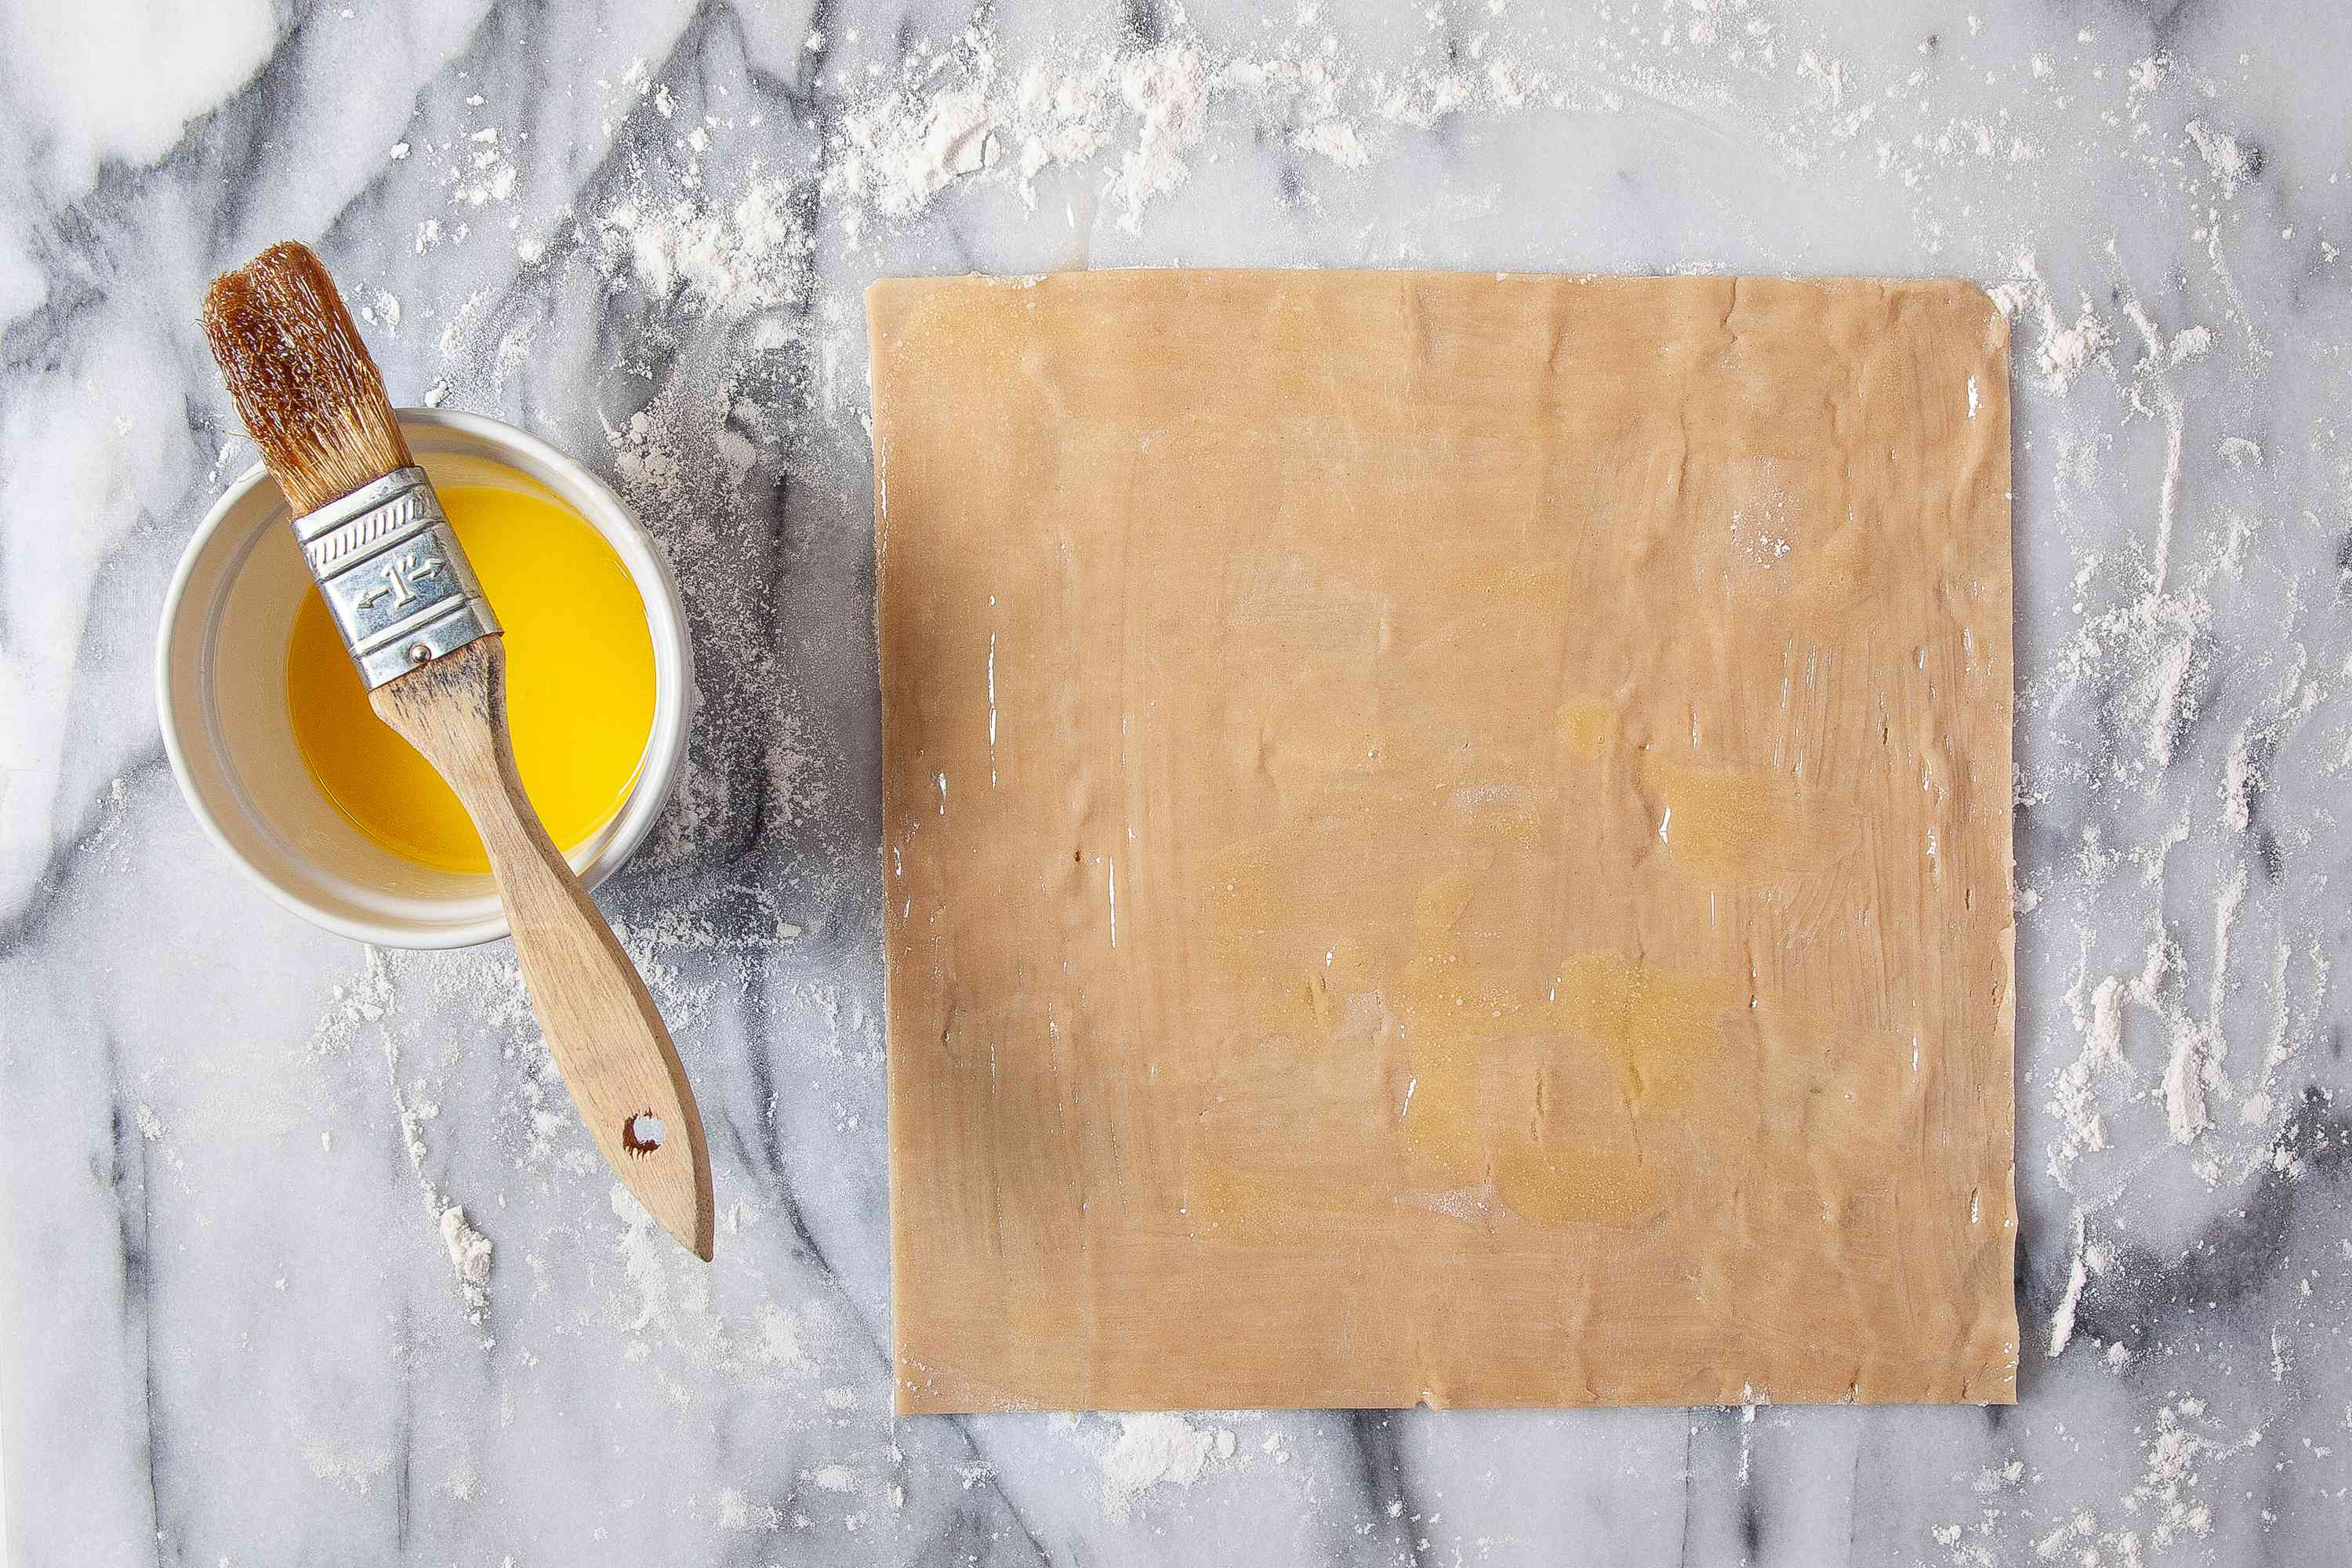 Pie crust brushed with melted butter